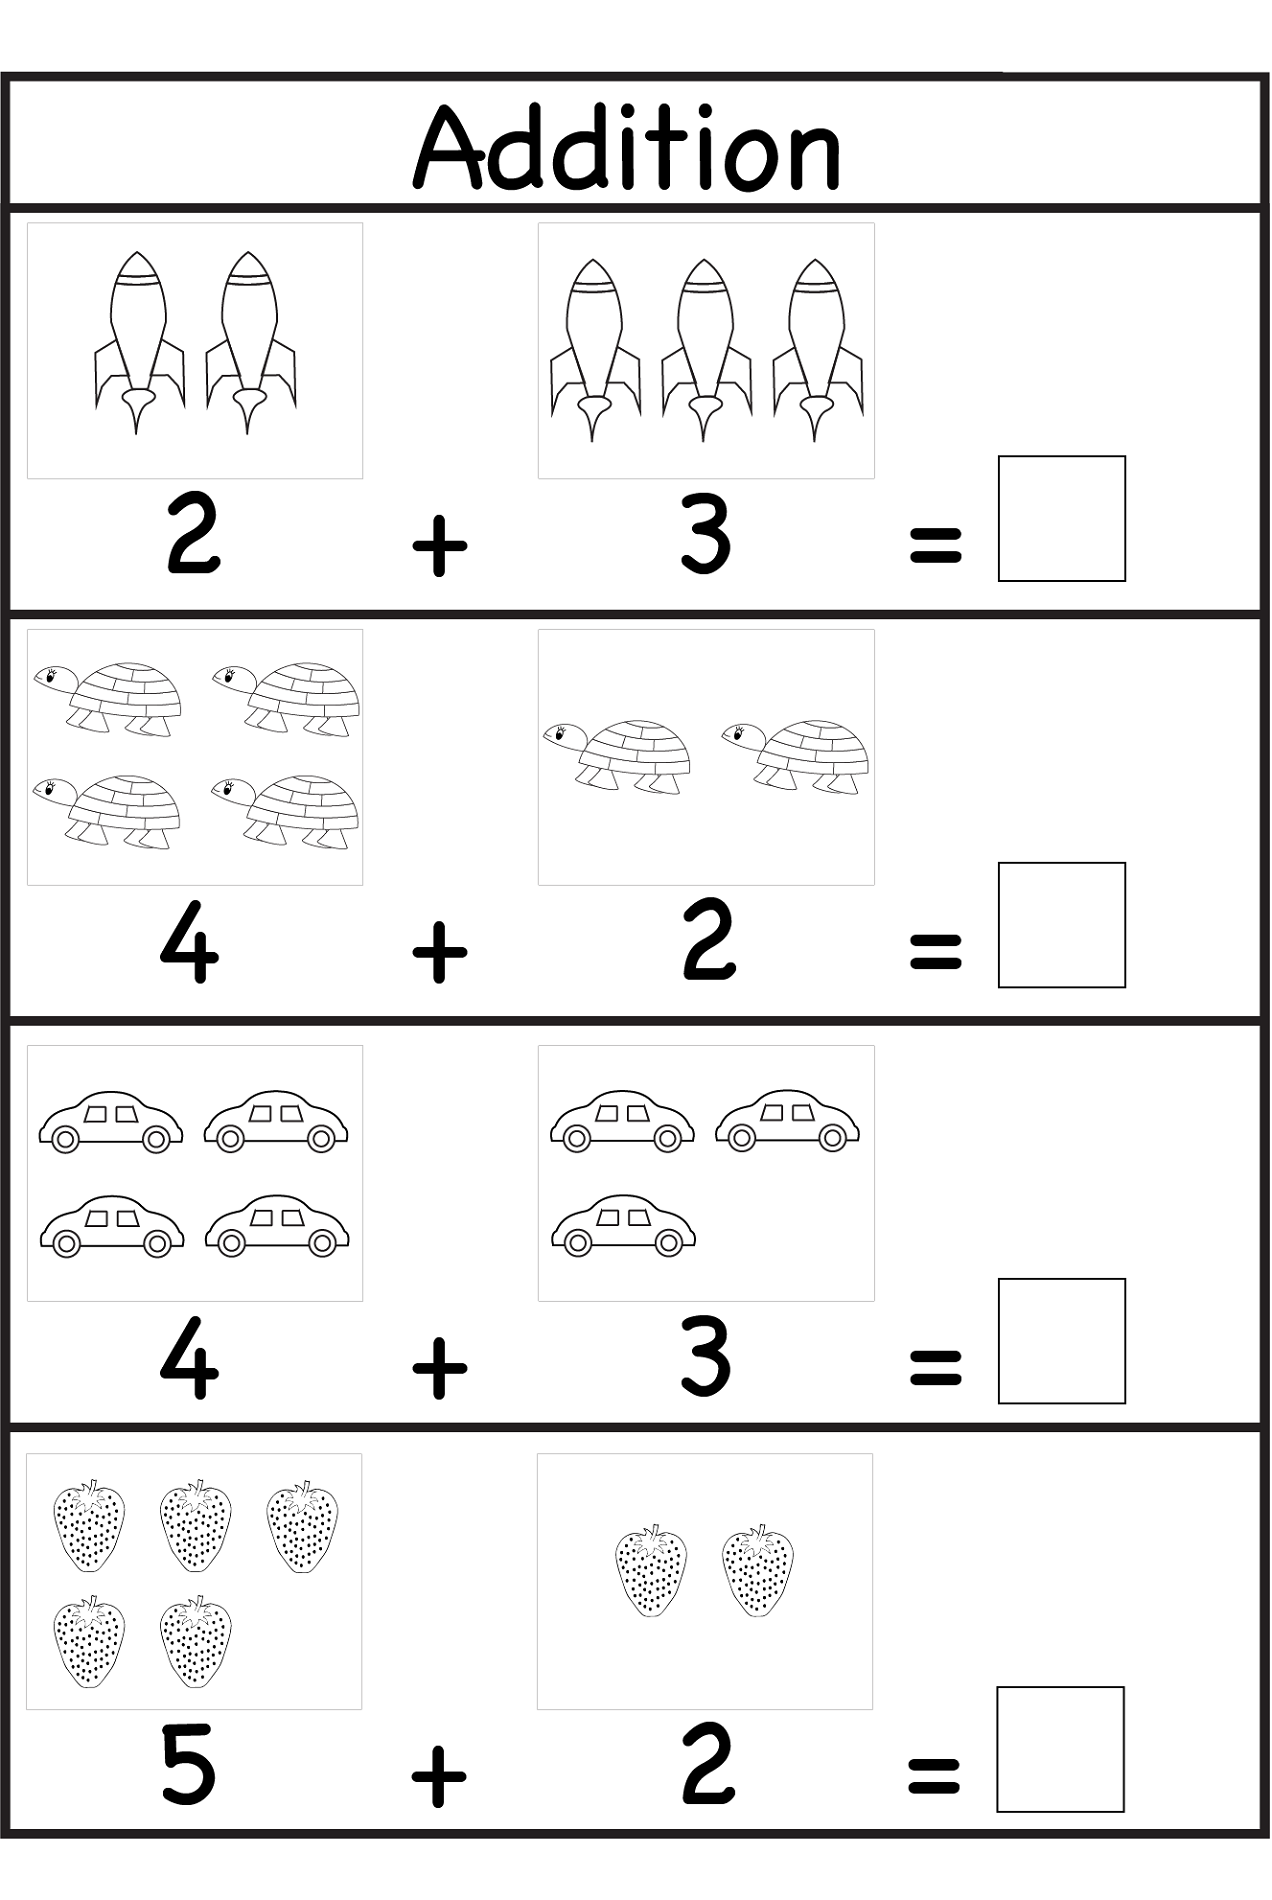 fun sheets for math addition - Printable Fun Sheets